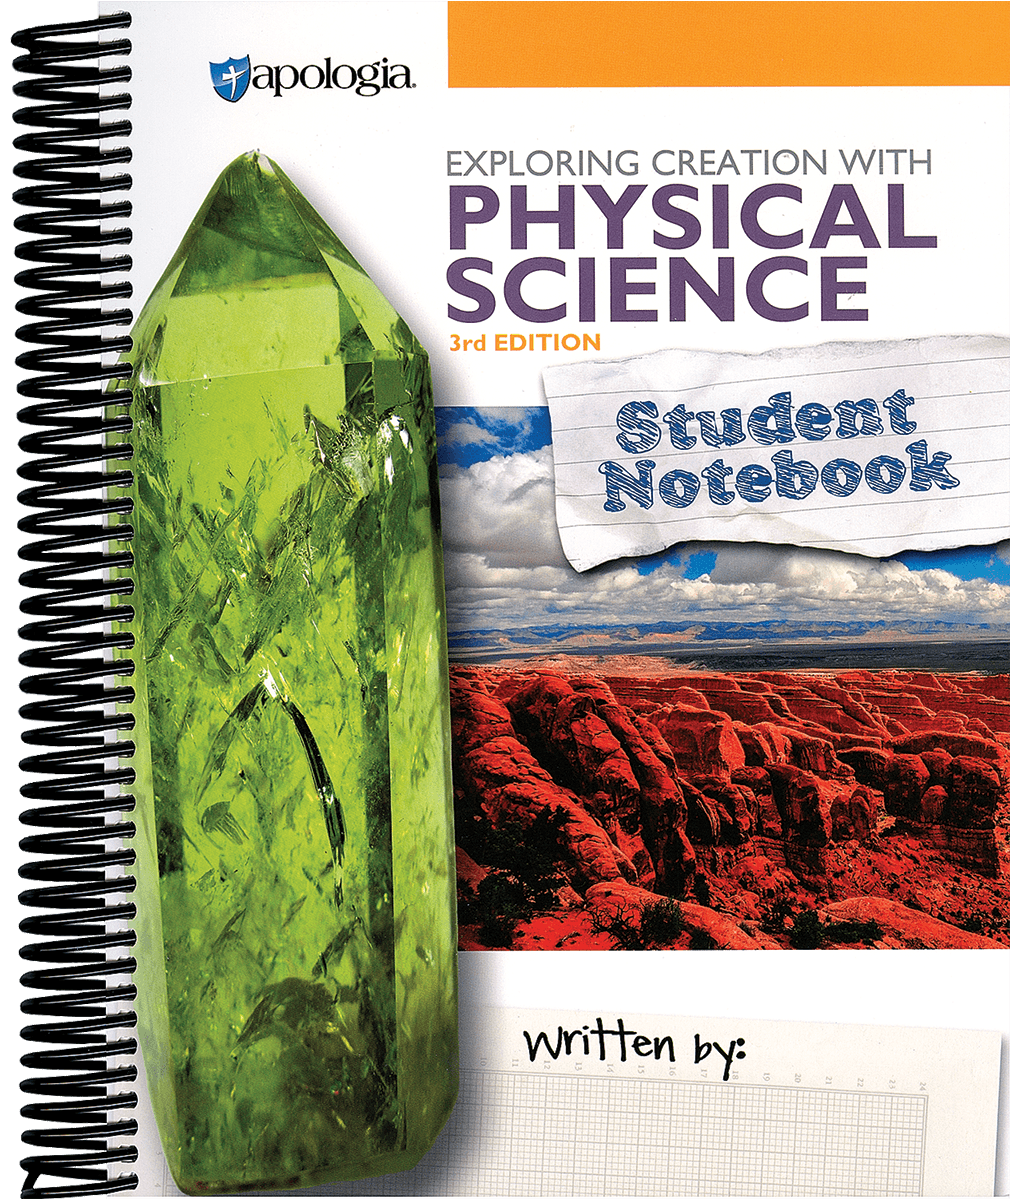 Apologia Physical Science, 3rd Ed. - Notebook